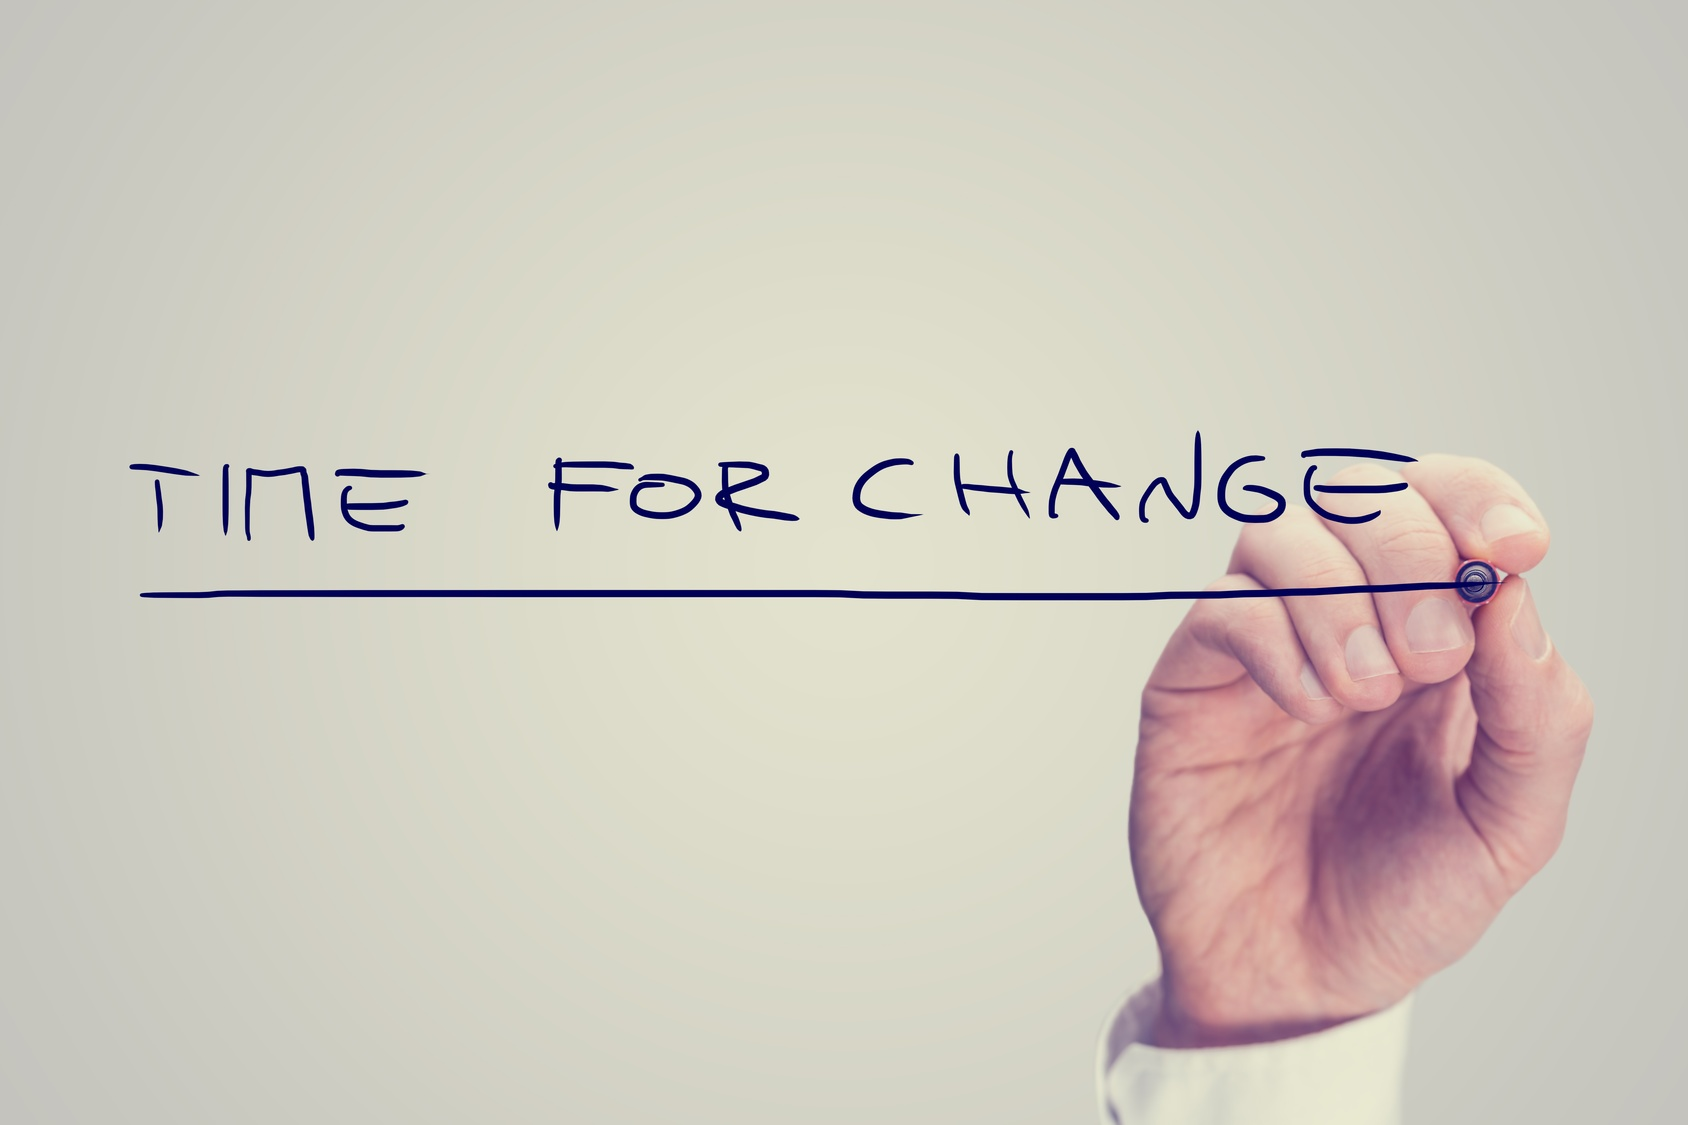 4 Questions to Help Managers Motivate Change